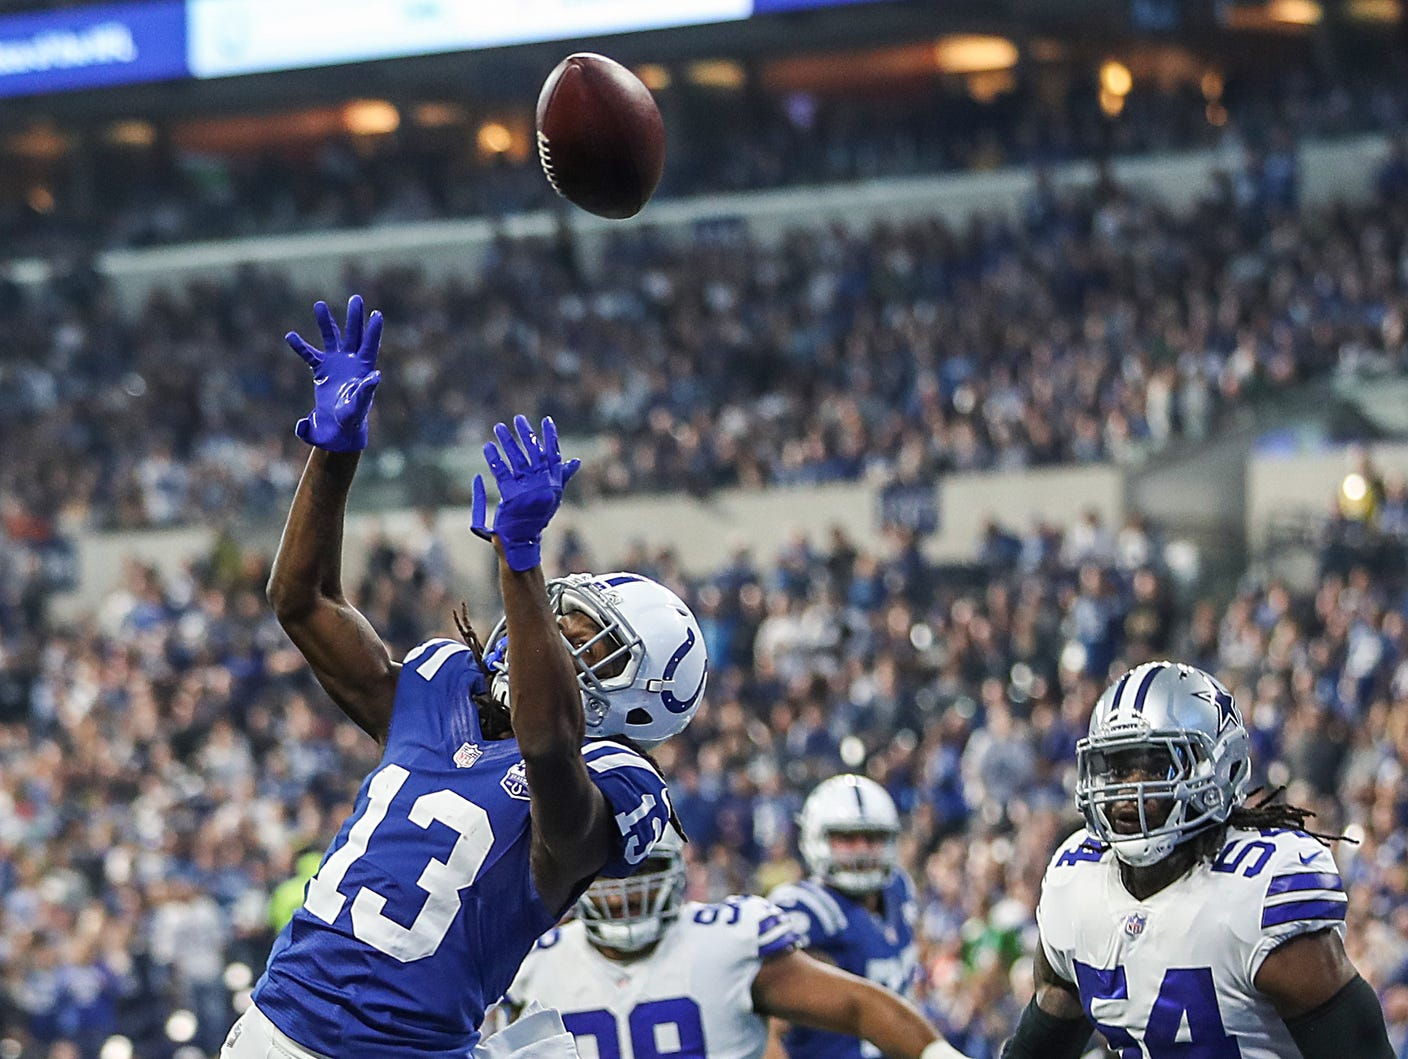 Indianapolis Colts wide receiver T.Y. Hilton (13) is unable to receive a pass in the end zone in the first half of the game at Lucas Oil Stadium in Indianapolis, Sunday, Dec. 16, 2018. The Colts won, 23-0.